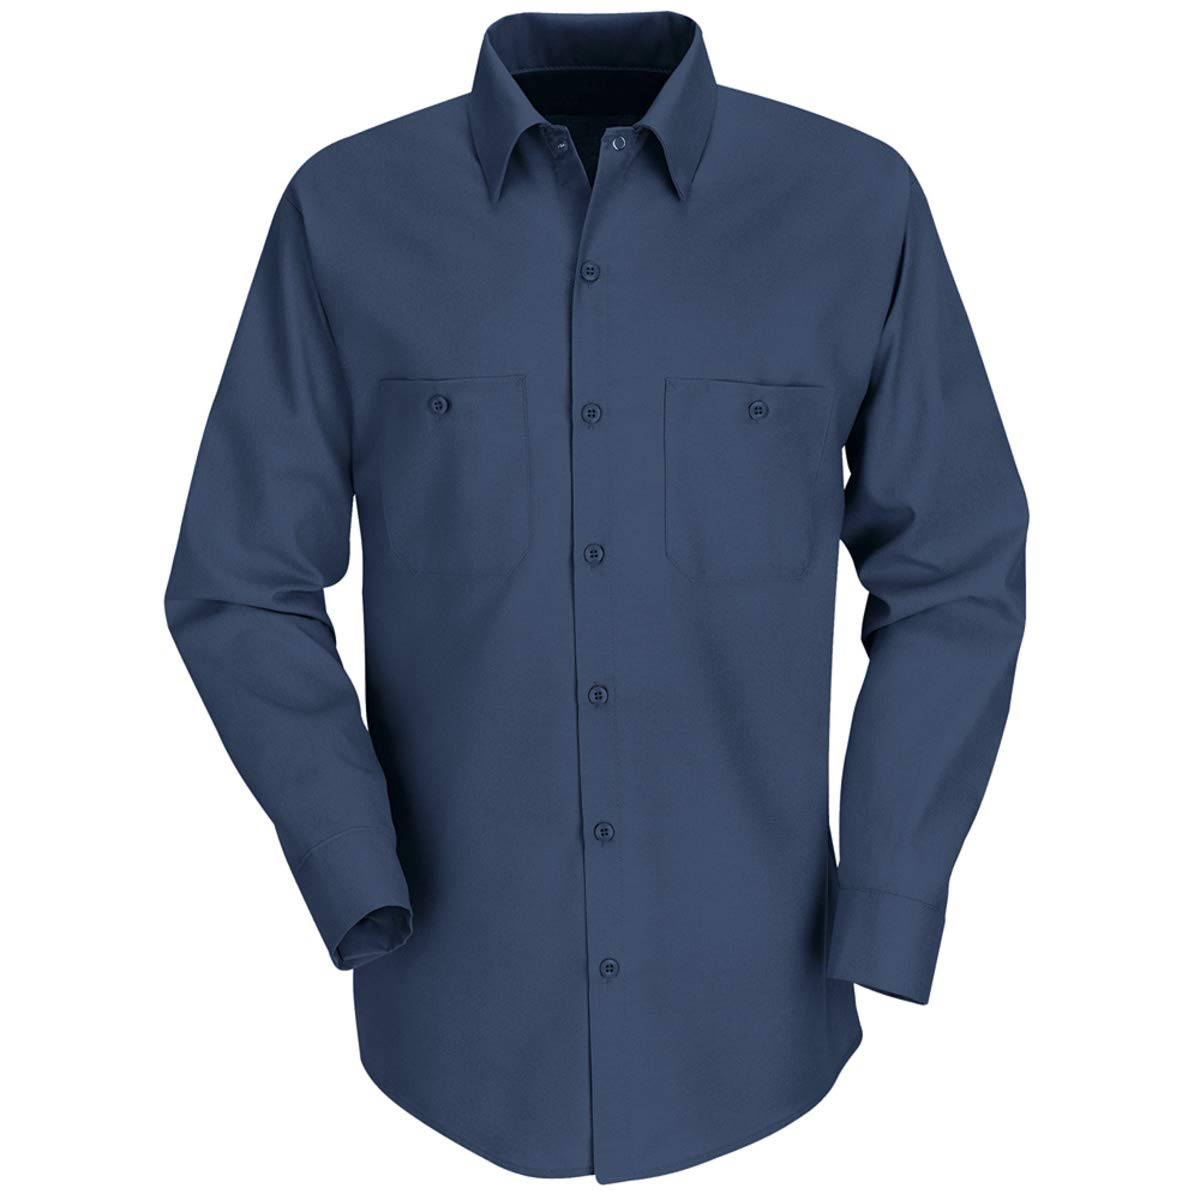 Red Kap 3X Navy 4.25 Ounce Polyester/Cotton Shirt With Button Closure